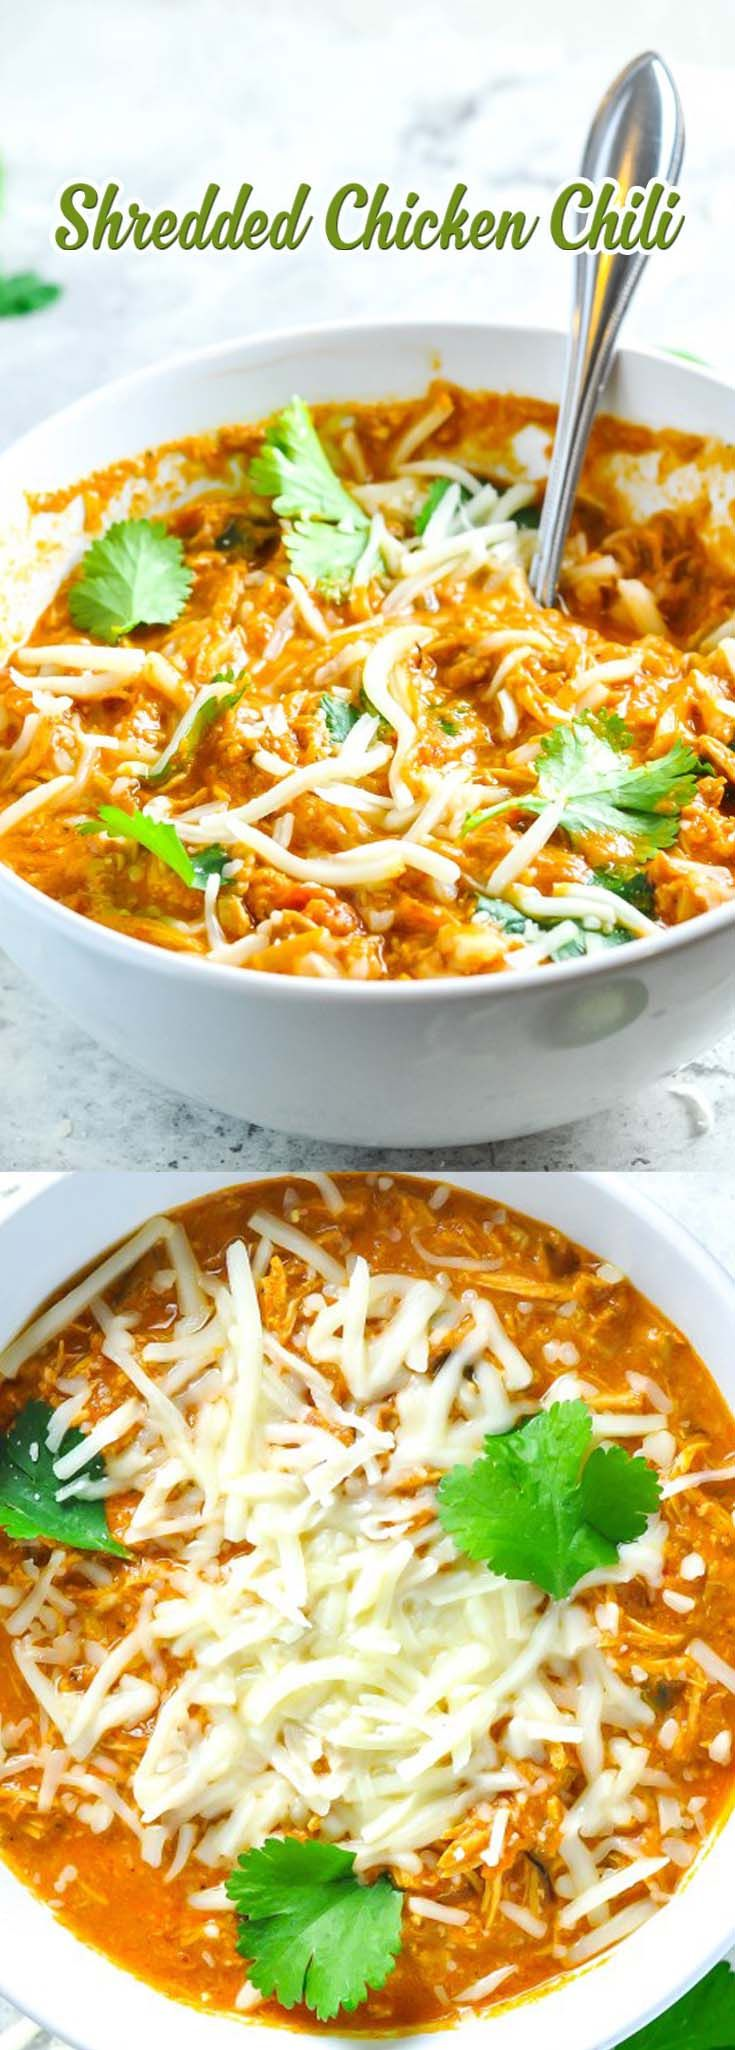 Shredded Chicken Chili includes 2 cups cooked shredded chicken, 2  tablespoon Butter, 4 cups